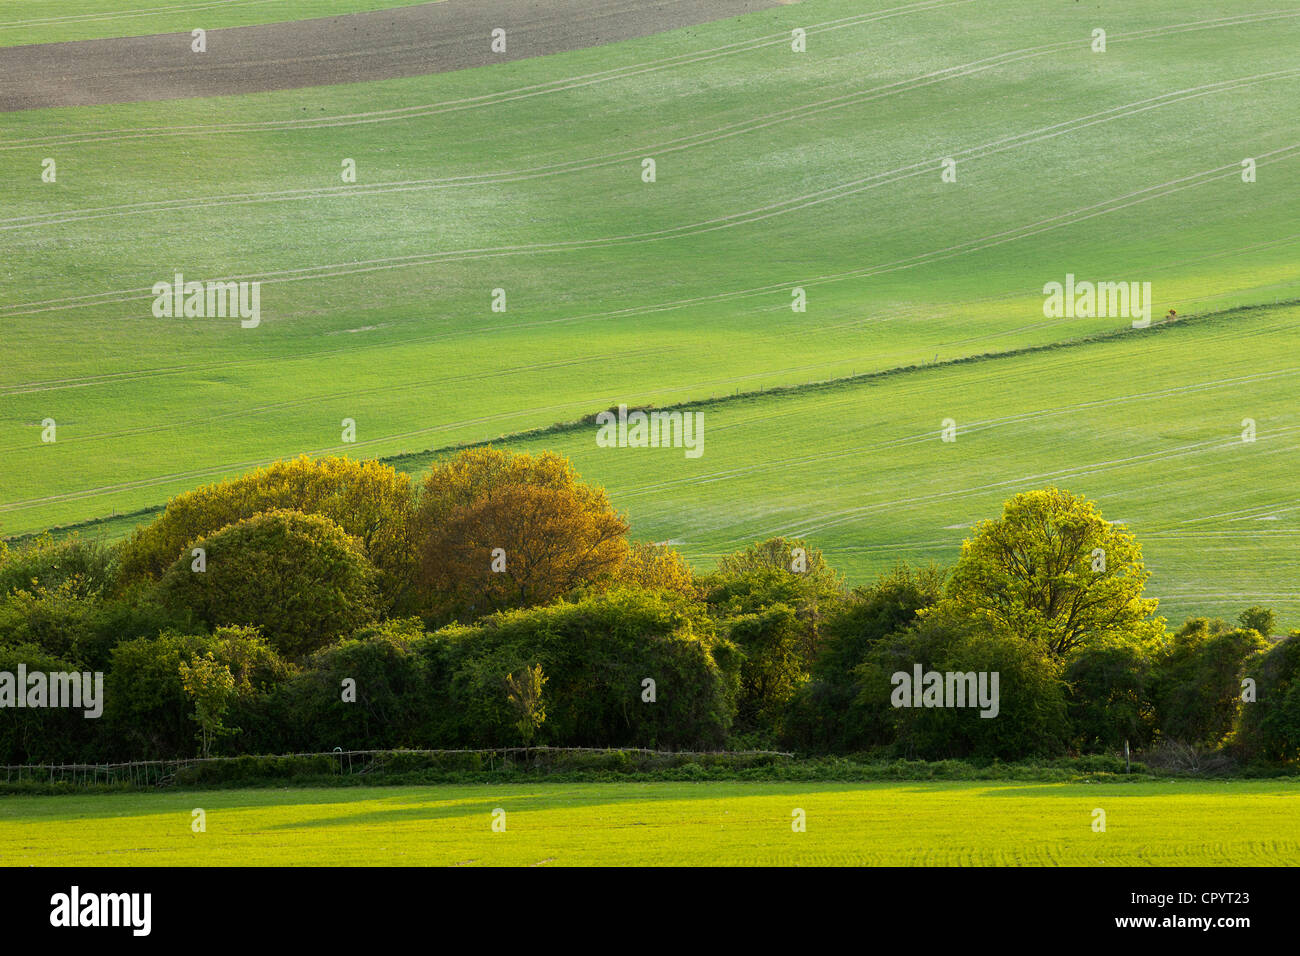 Parque Nacional de South Downs, East Sussex, Inglaterra. Imagen De Stock